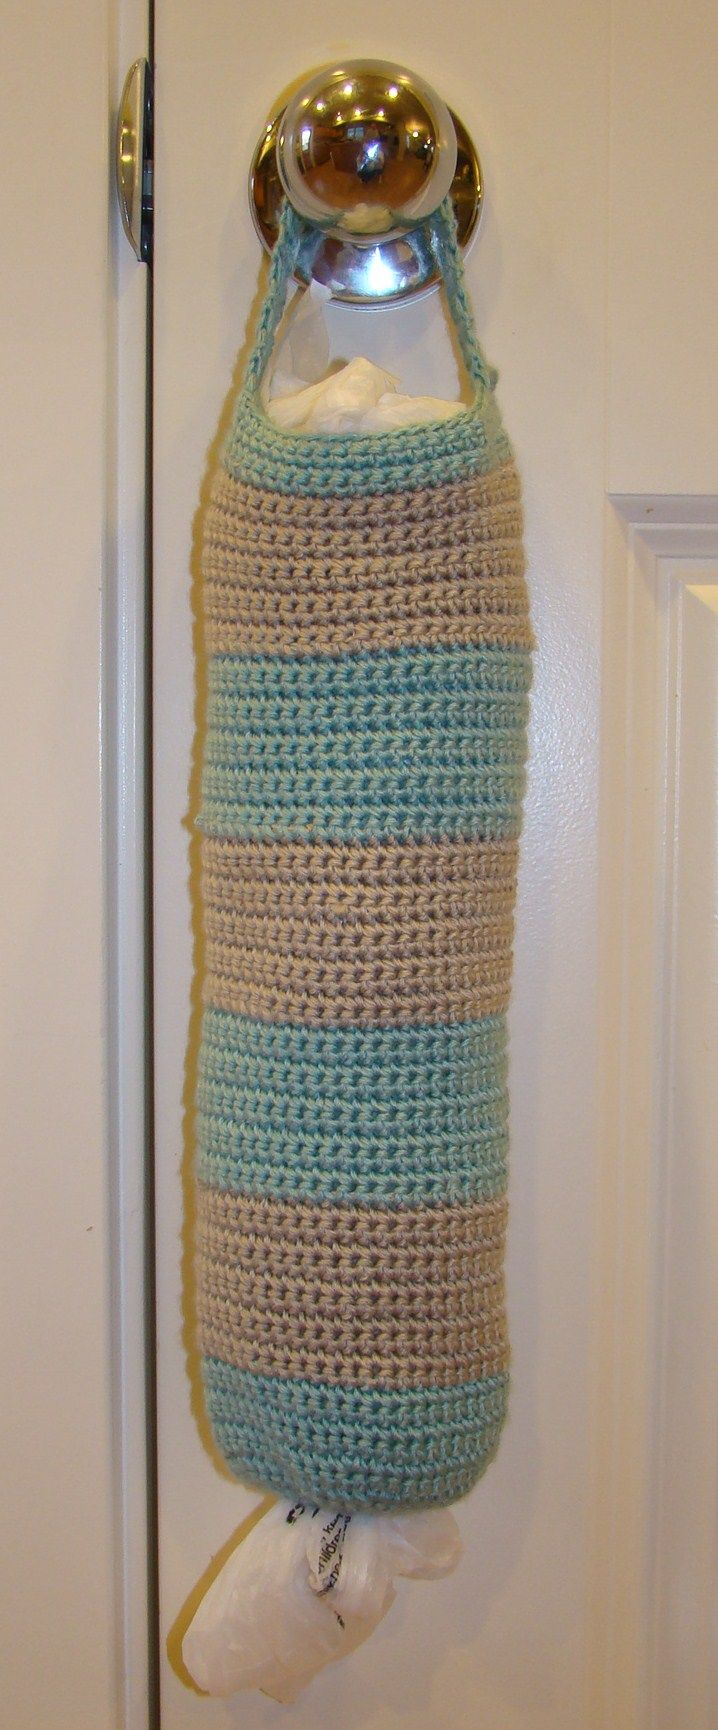 Easy, Cute, and Useful! This Grocery bag holder can be as long as you need. It is made from Spa Yarn (size 3) but will work with any yarn or colors you want.  Great idea for those who hold on to their grocery bags.